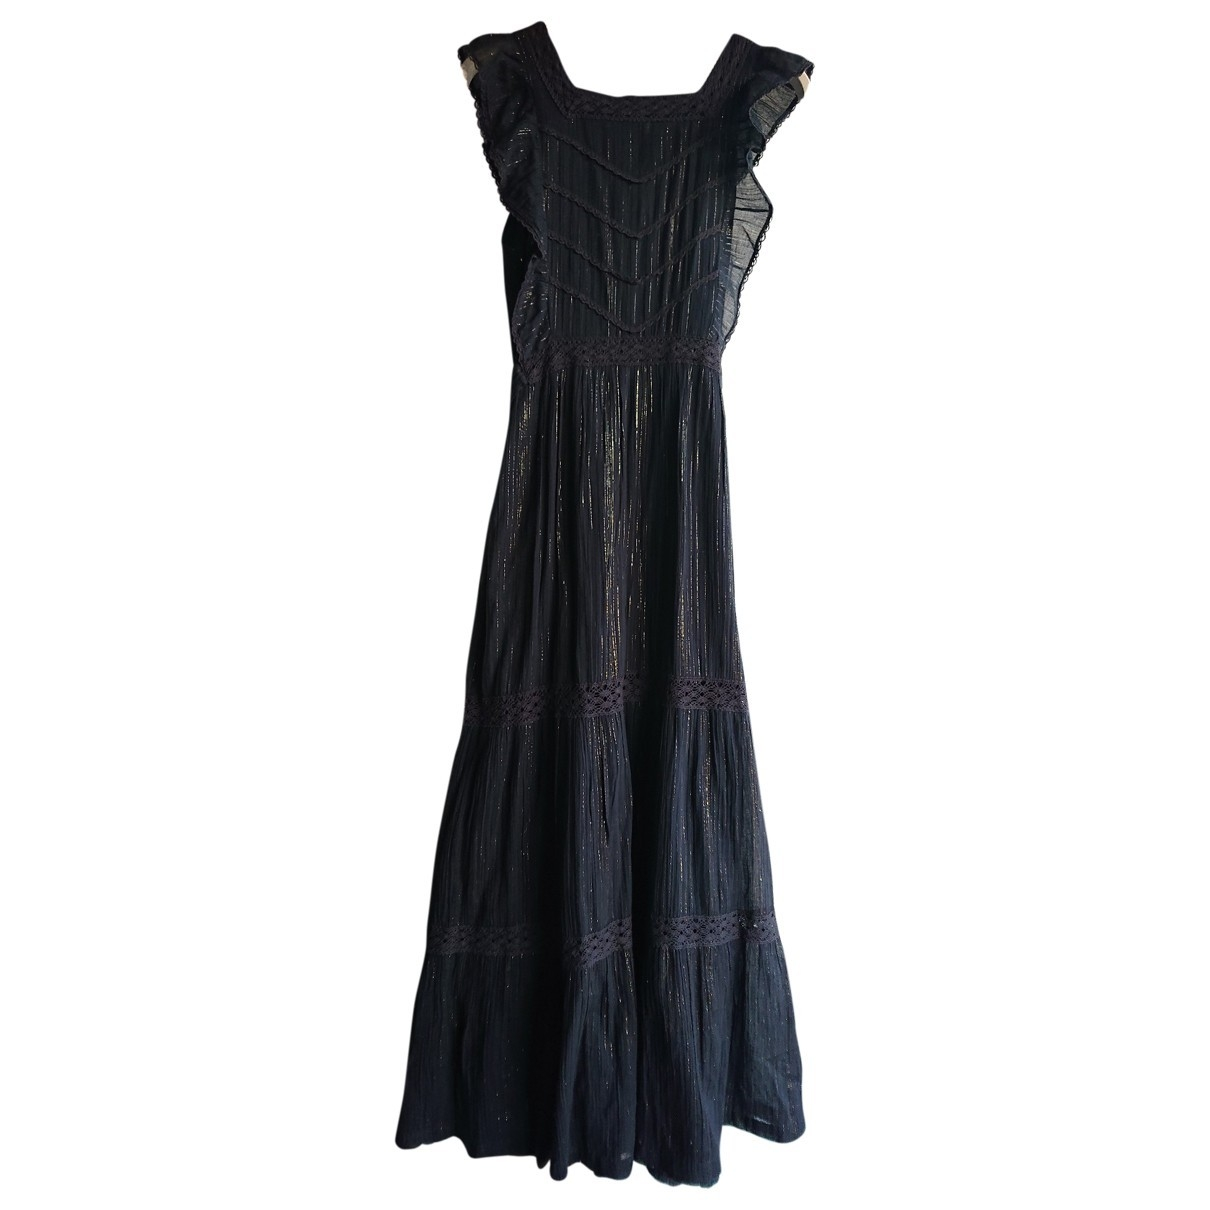 Soeur \N Black Cotton dress for Women 36 FR